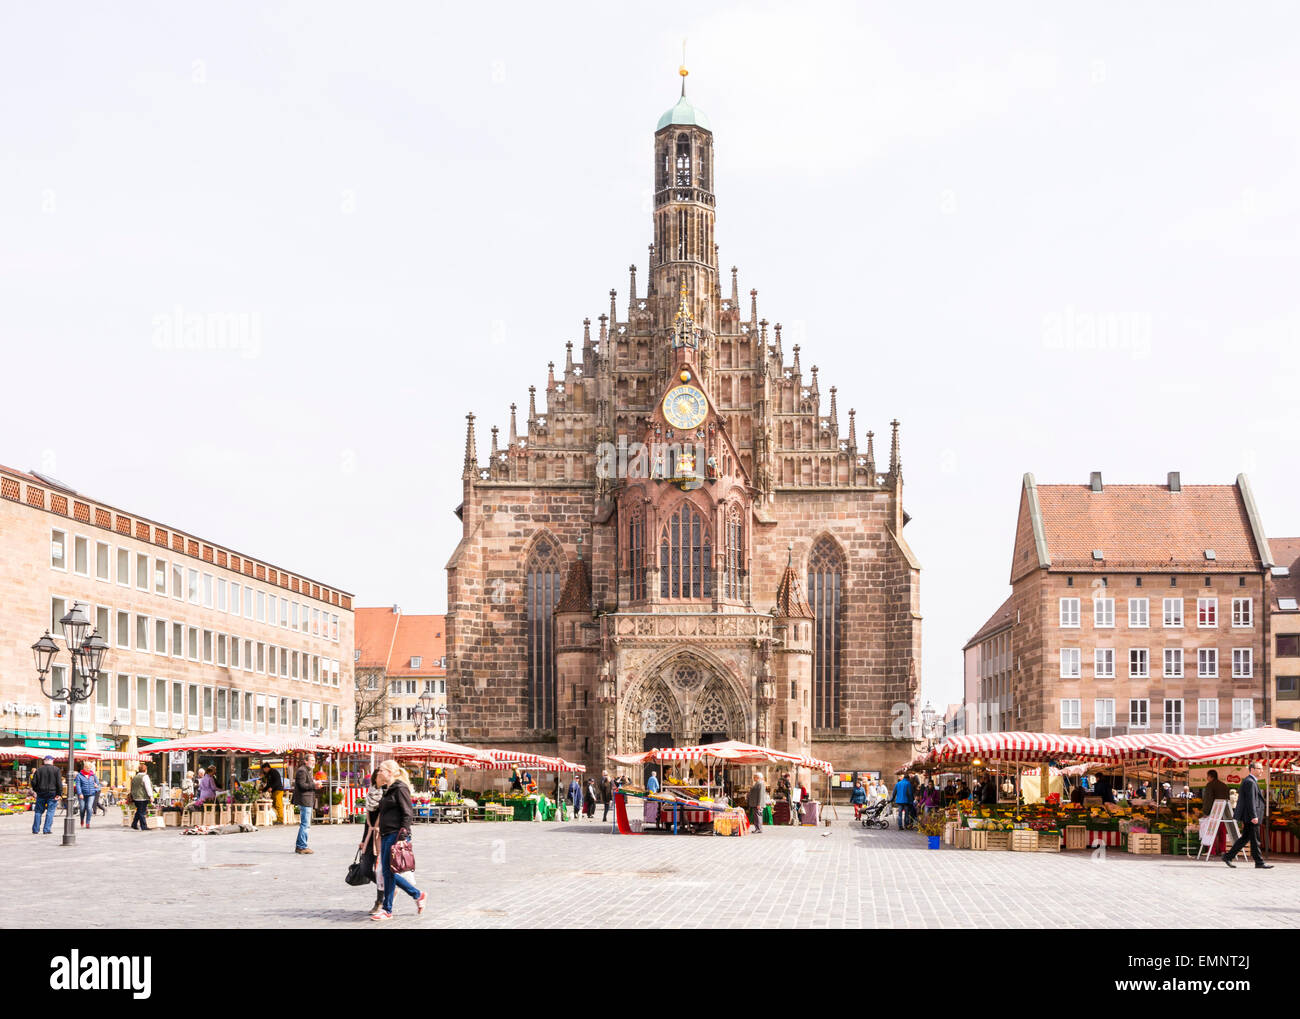 NUERNBERG, GERMANY - APRIL 9: Tourist at the Frauenkirche in Nuernberg, Germany on April 9, 2015. The church is Stock Photo